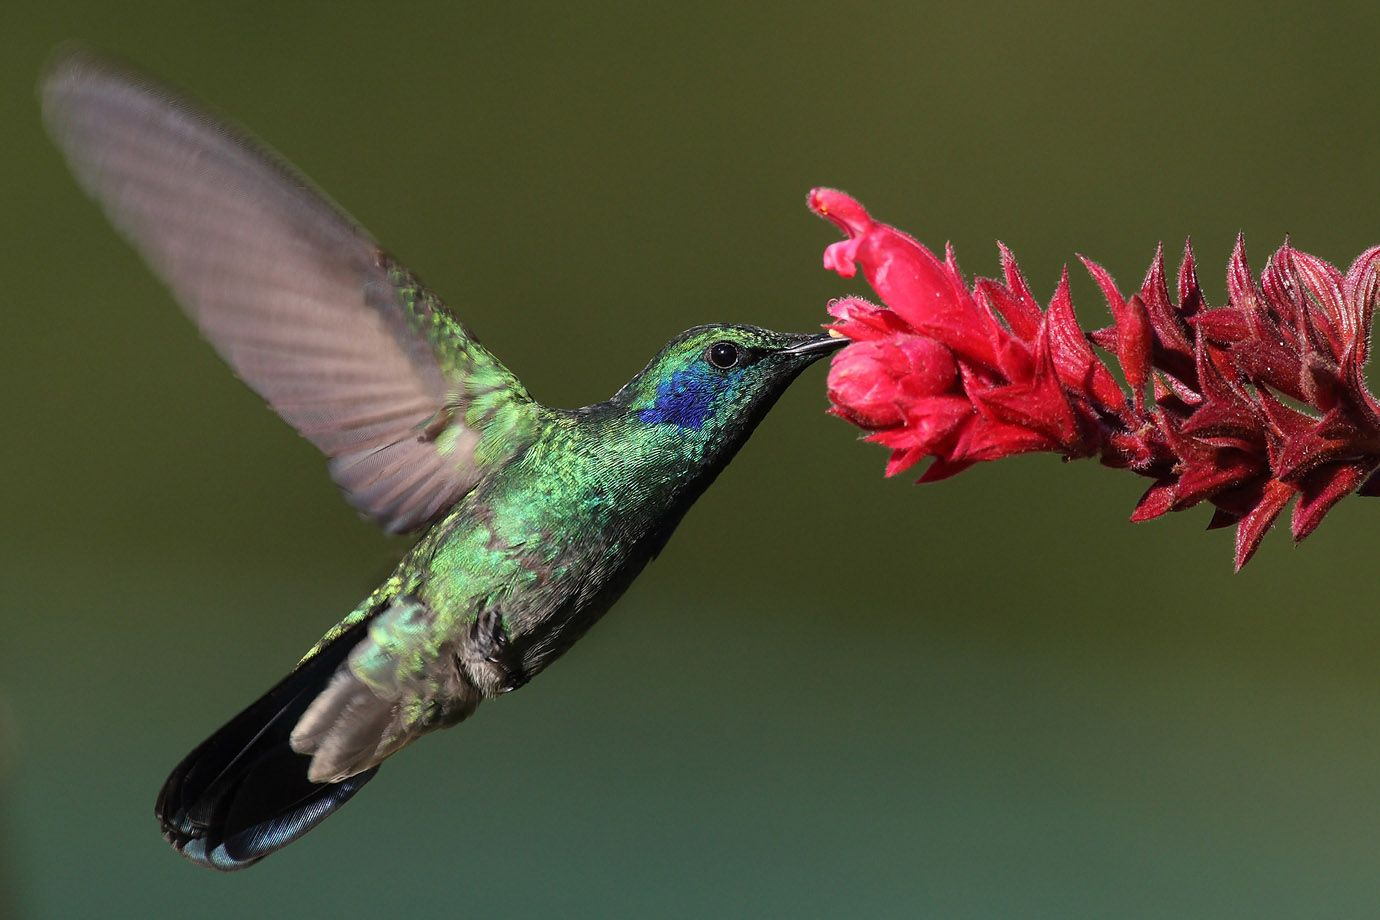 Green Violetear collecting nectar